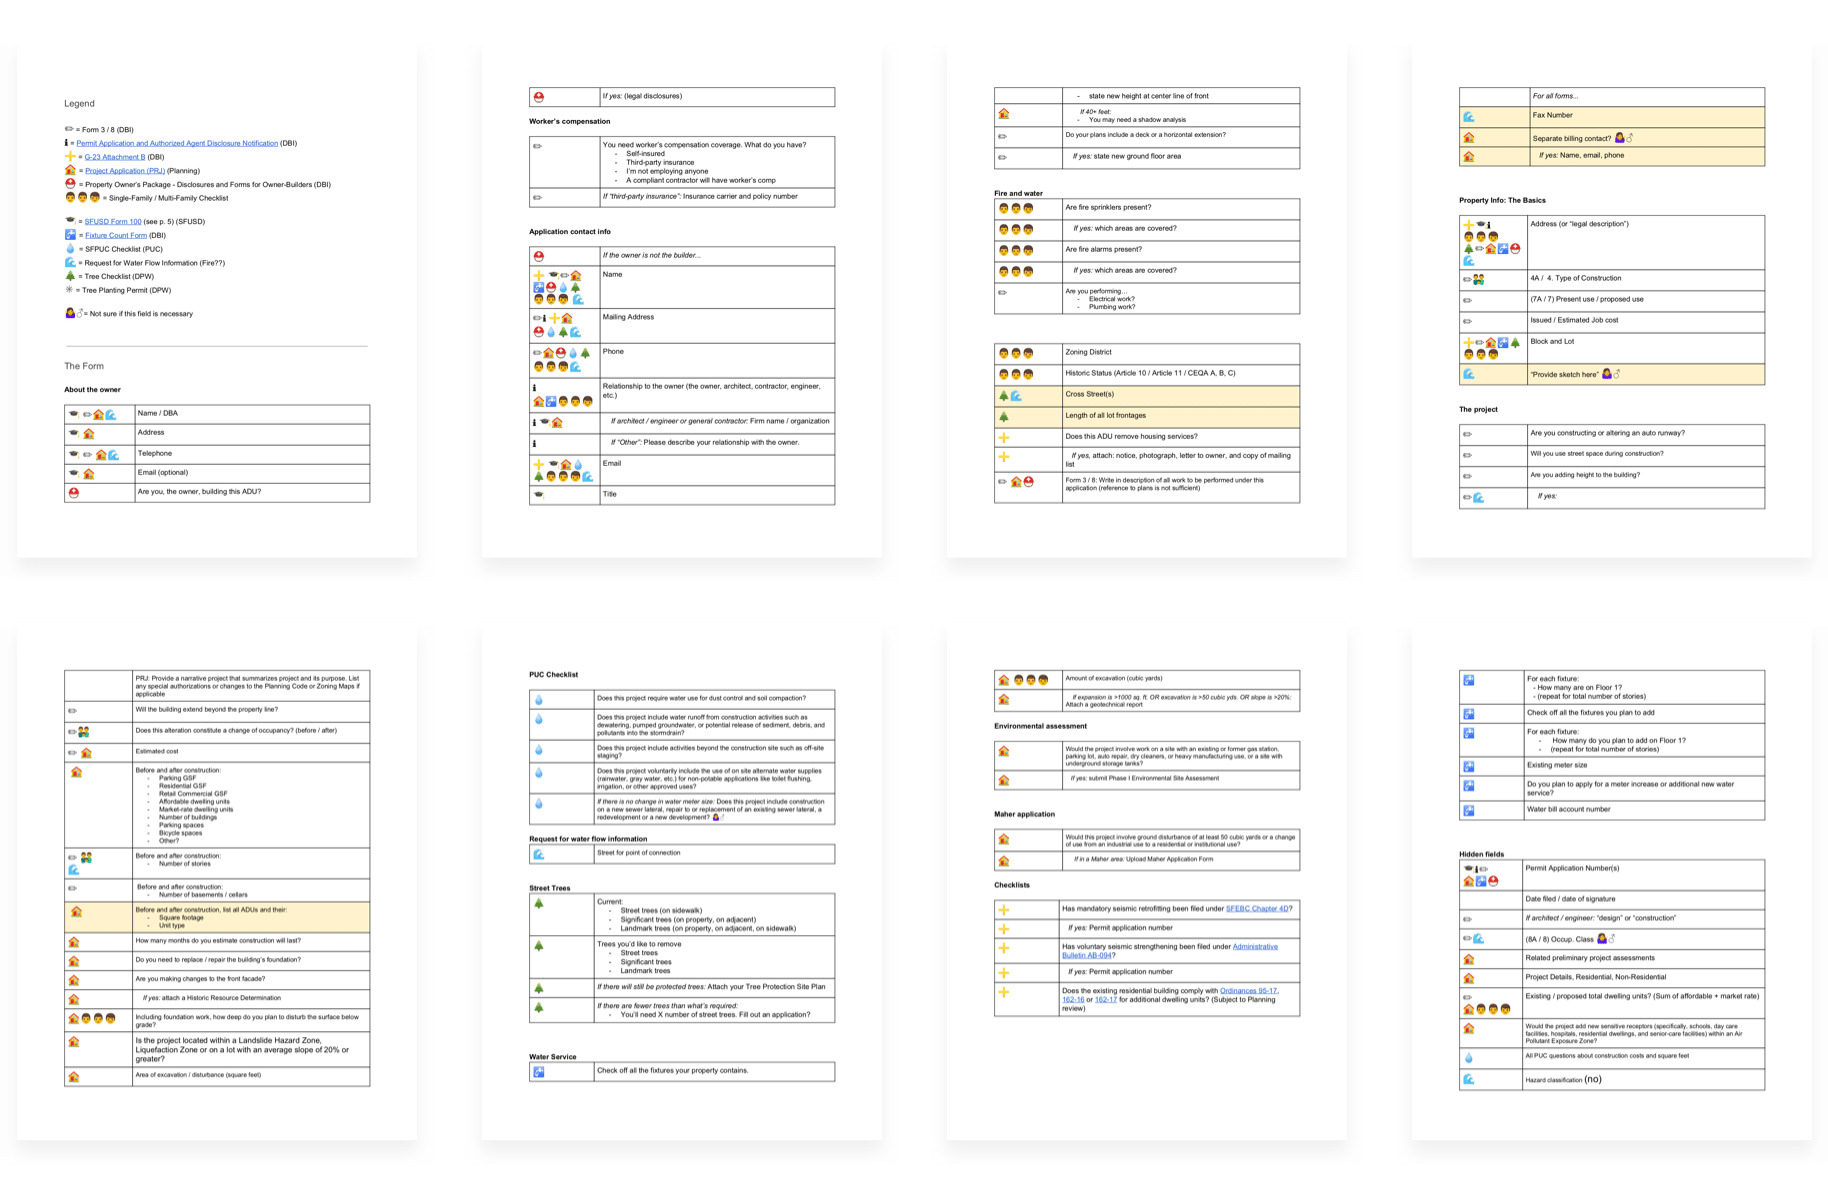 Pages from the Google Doc used for the first draft of revised content.